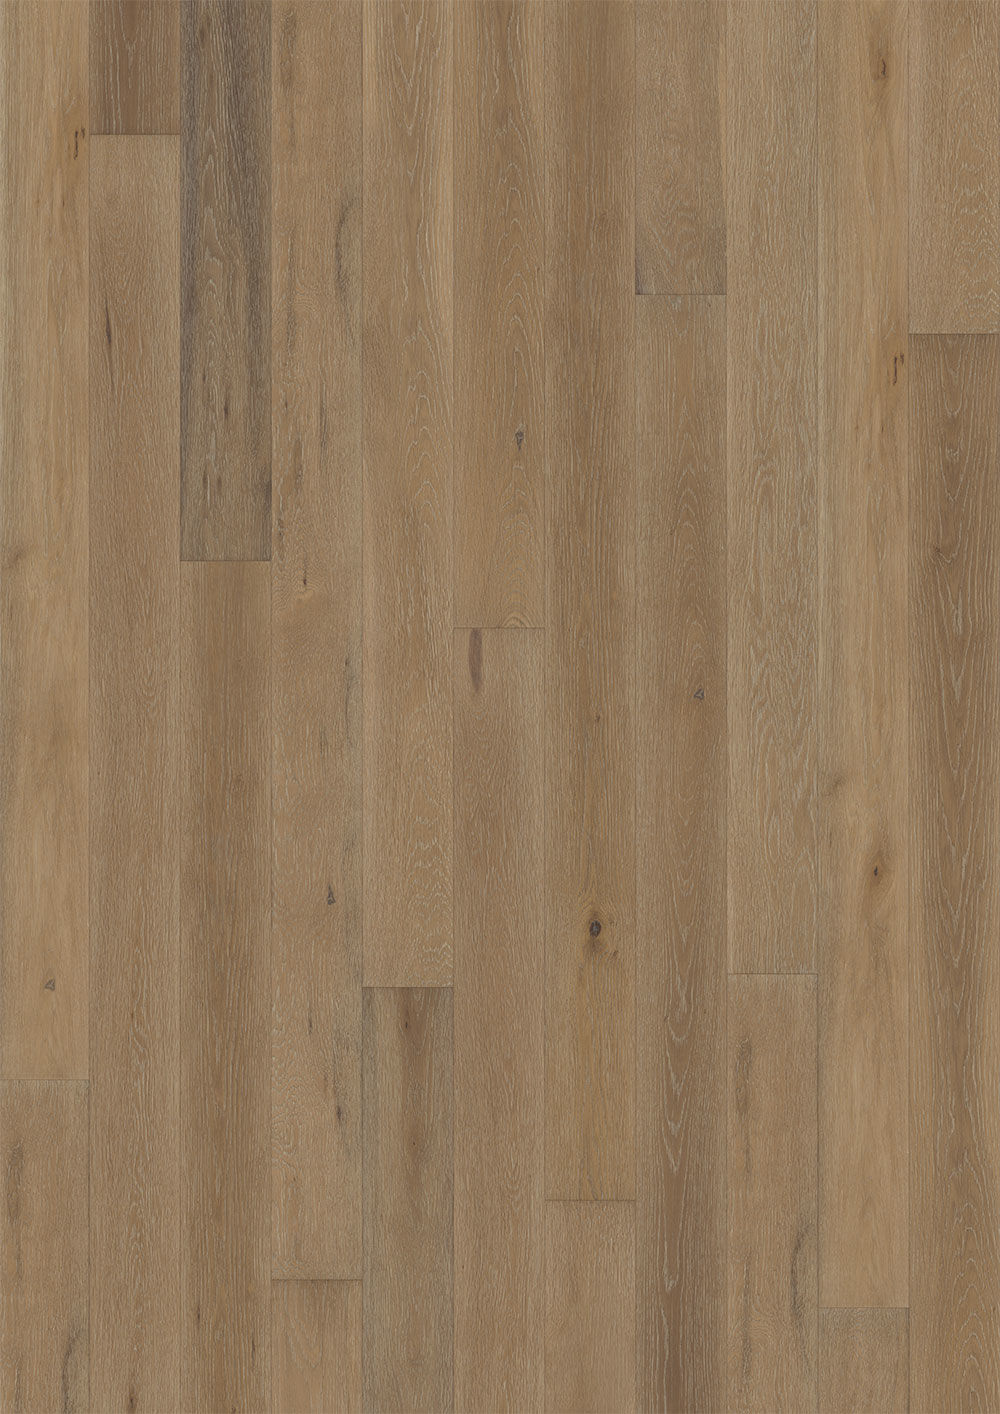 Kahrs Avanti Canvas Hardwood Flooring Oak Hue